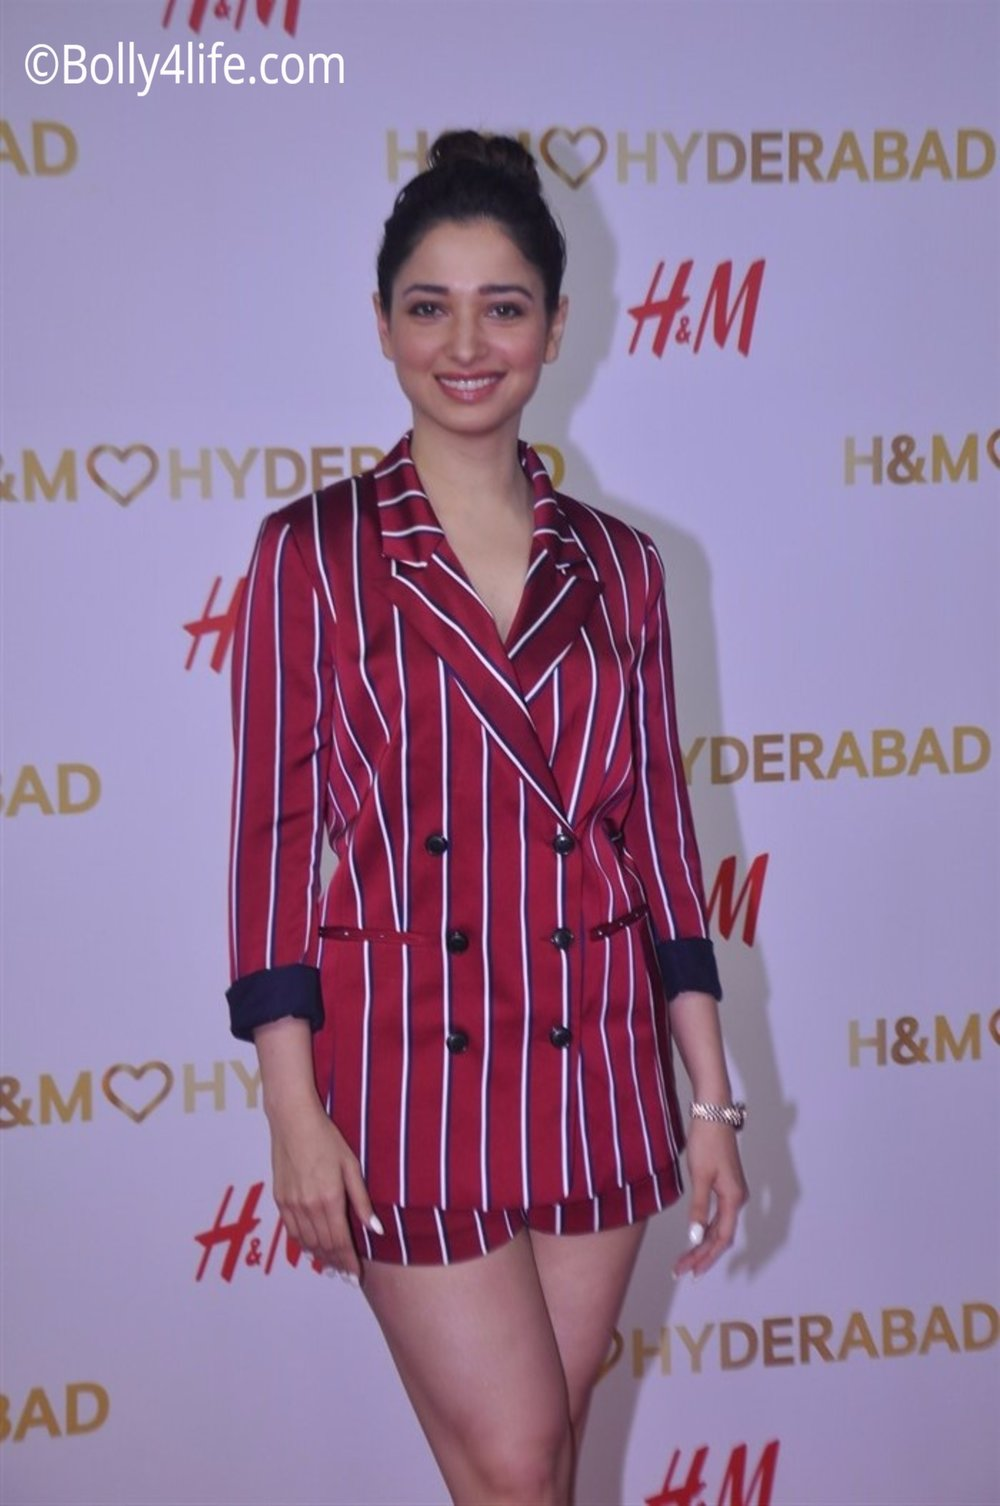 actress-hms-vip-party-inorbit-mall-hyderabad-4ff8930.jpg